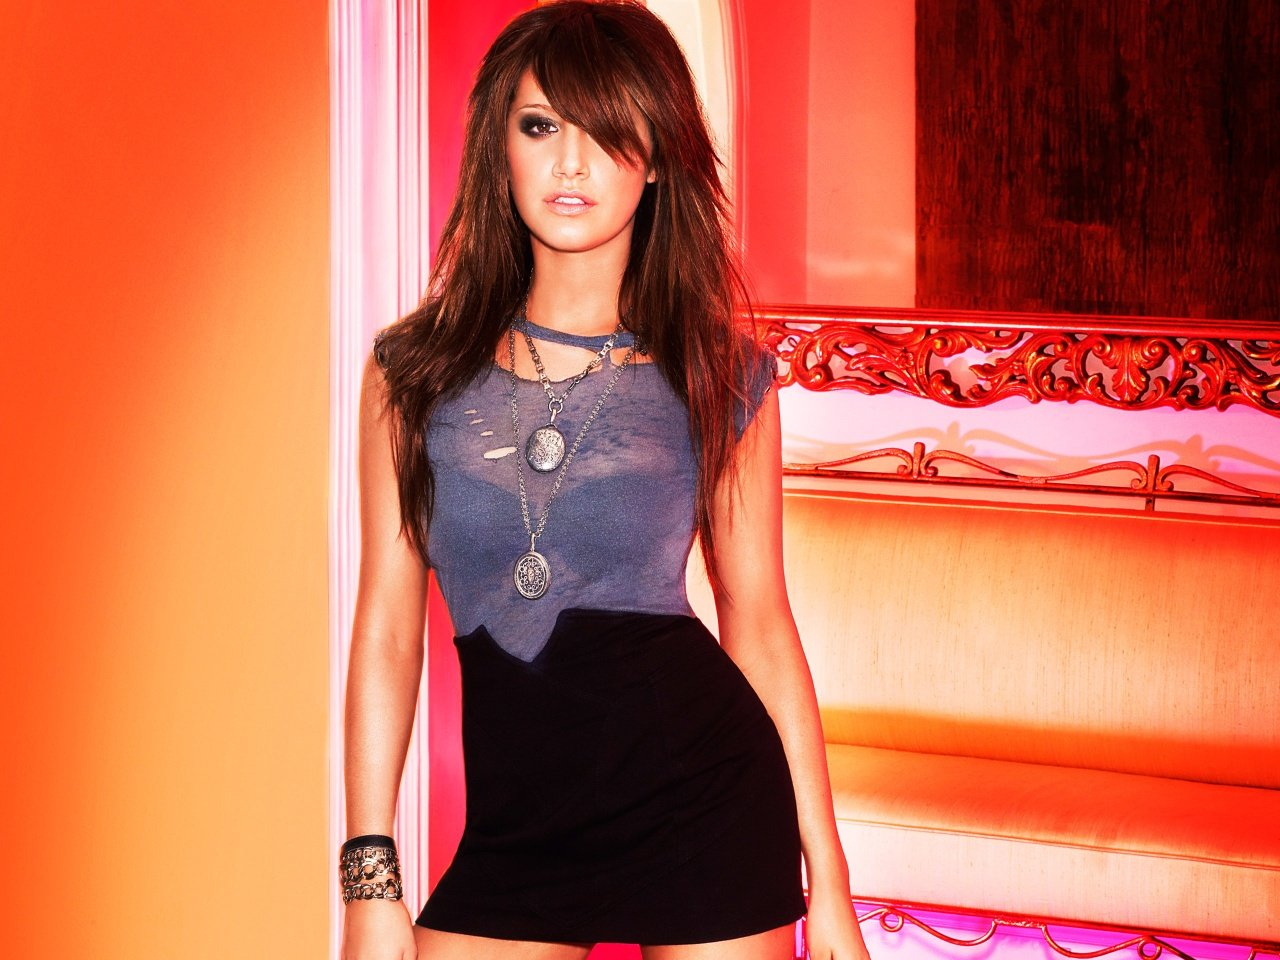 Ashley Tisdale Wallpaper x ID